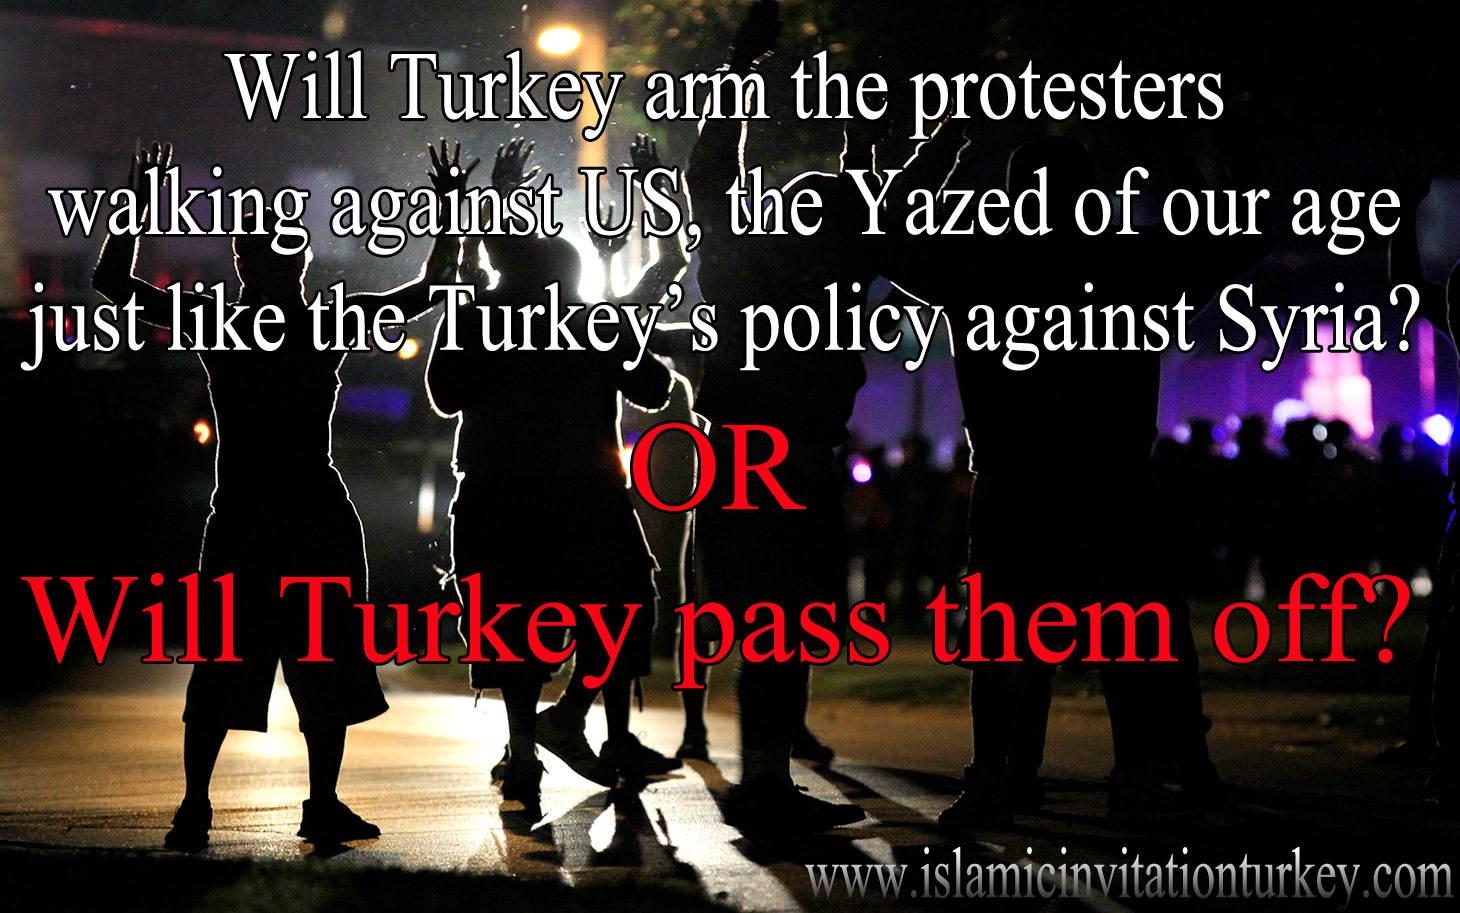 Photo of Will Turkey arm the protesters walking against US, the Yazed of our age just like Turkey's policy against Syria?